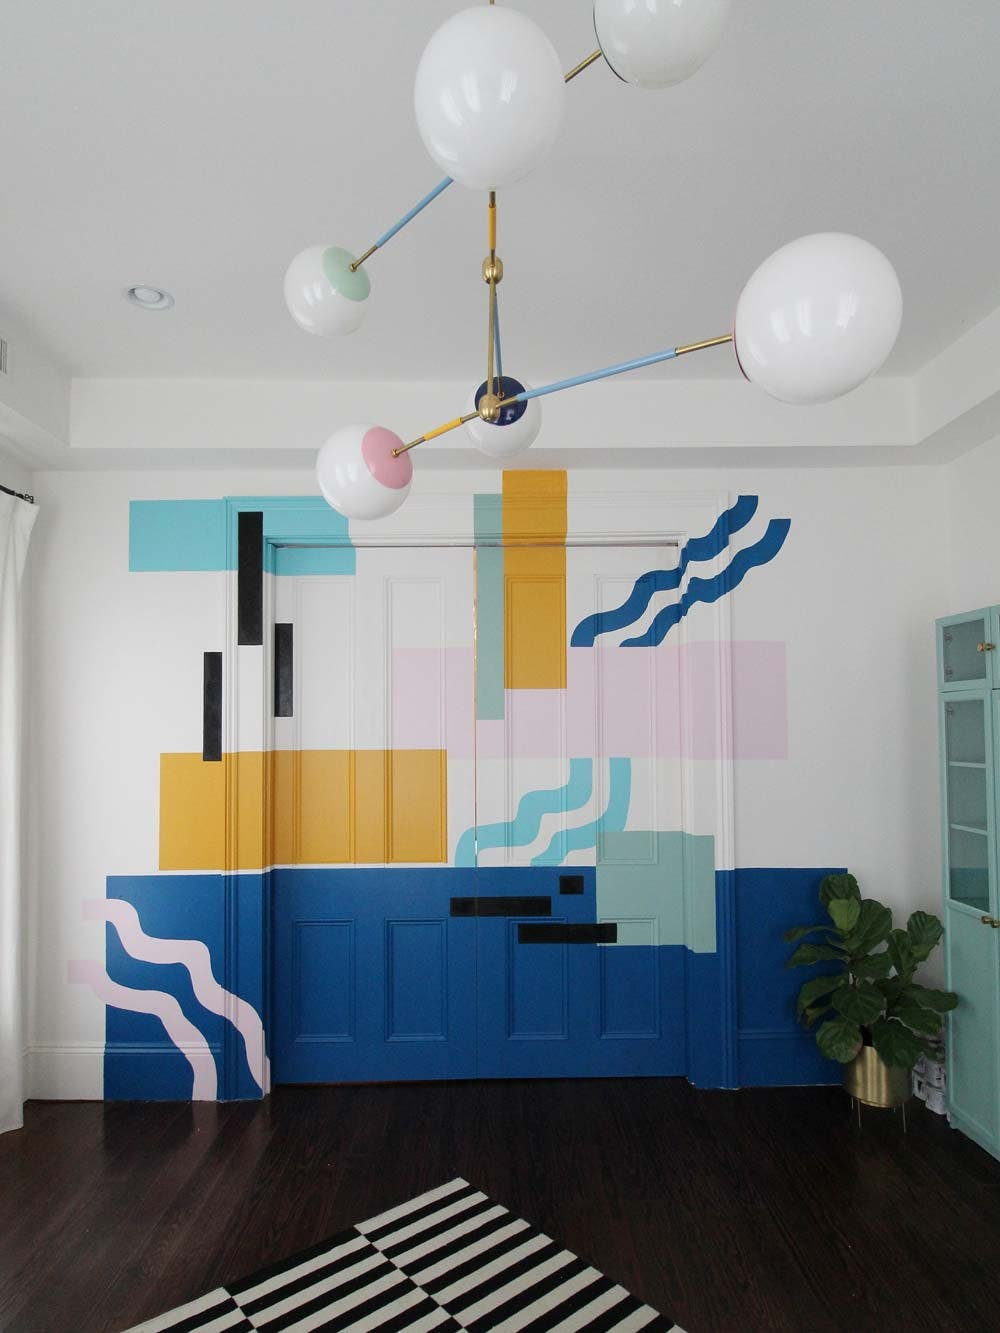 wall with colorful abstract mural in blue and yellow